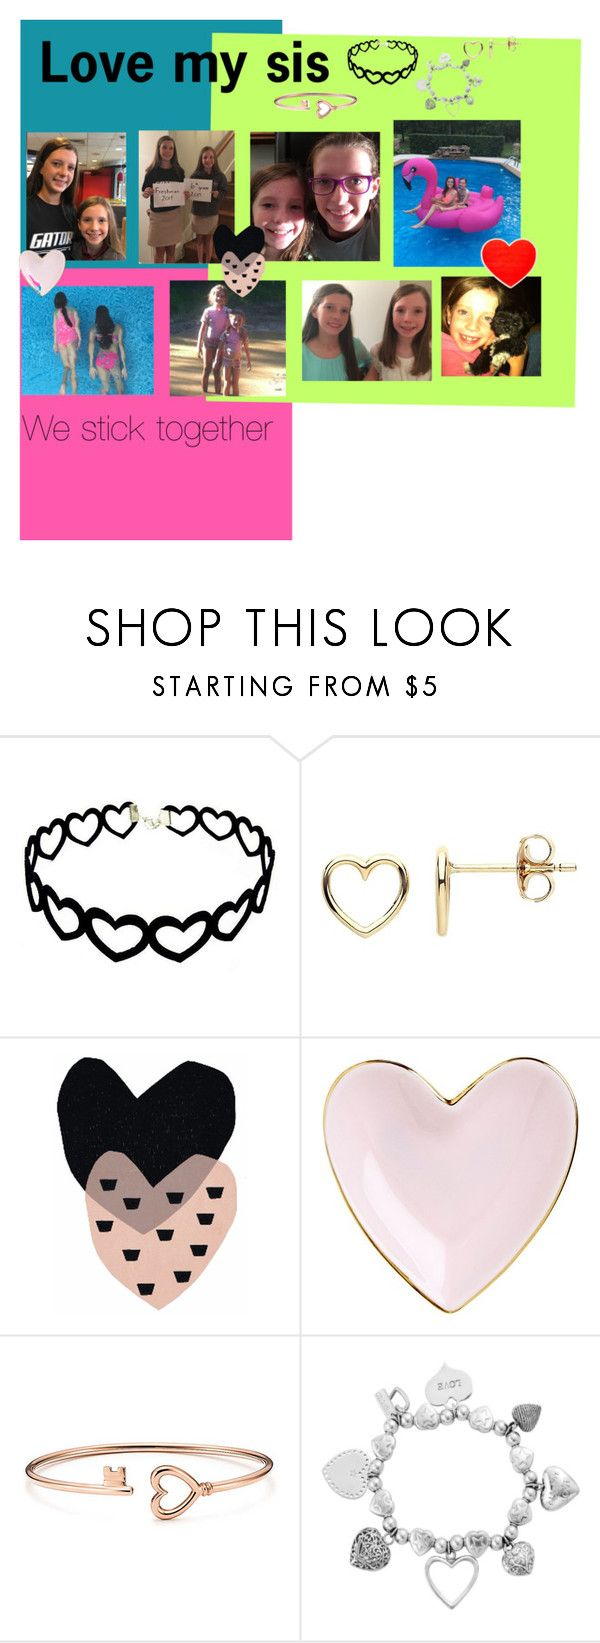 """""""Love ❤️ my sis @katelin-booker"""" by emilyannbooker ❤ liked on Polyvore featuring interior, interiors, interior design, home, home decor, interior decorating, Estella Bartlett, Seventy Tree, ChloBo and ban.do"""